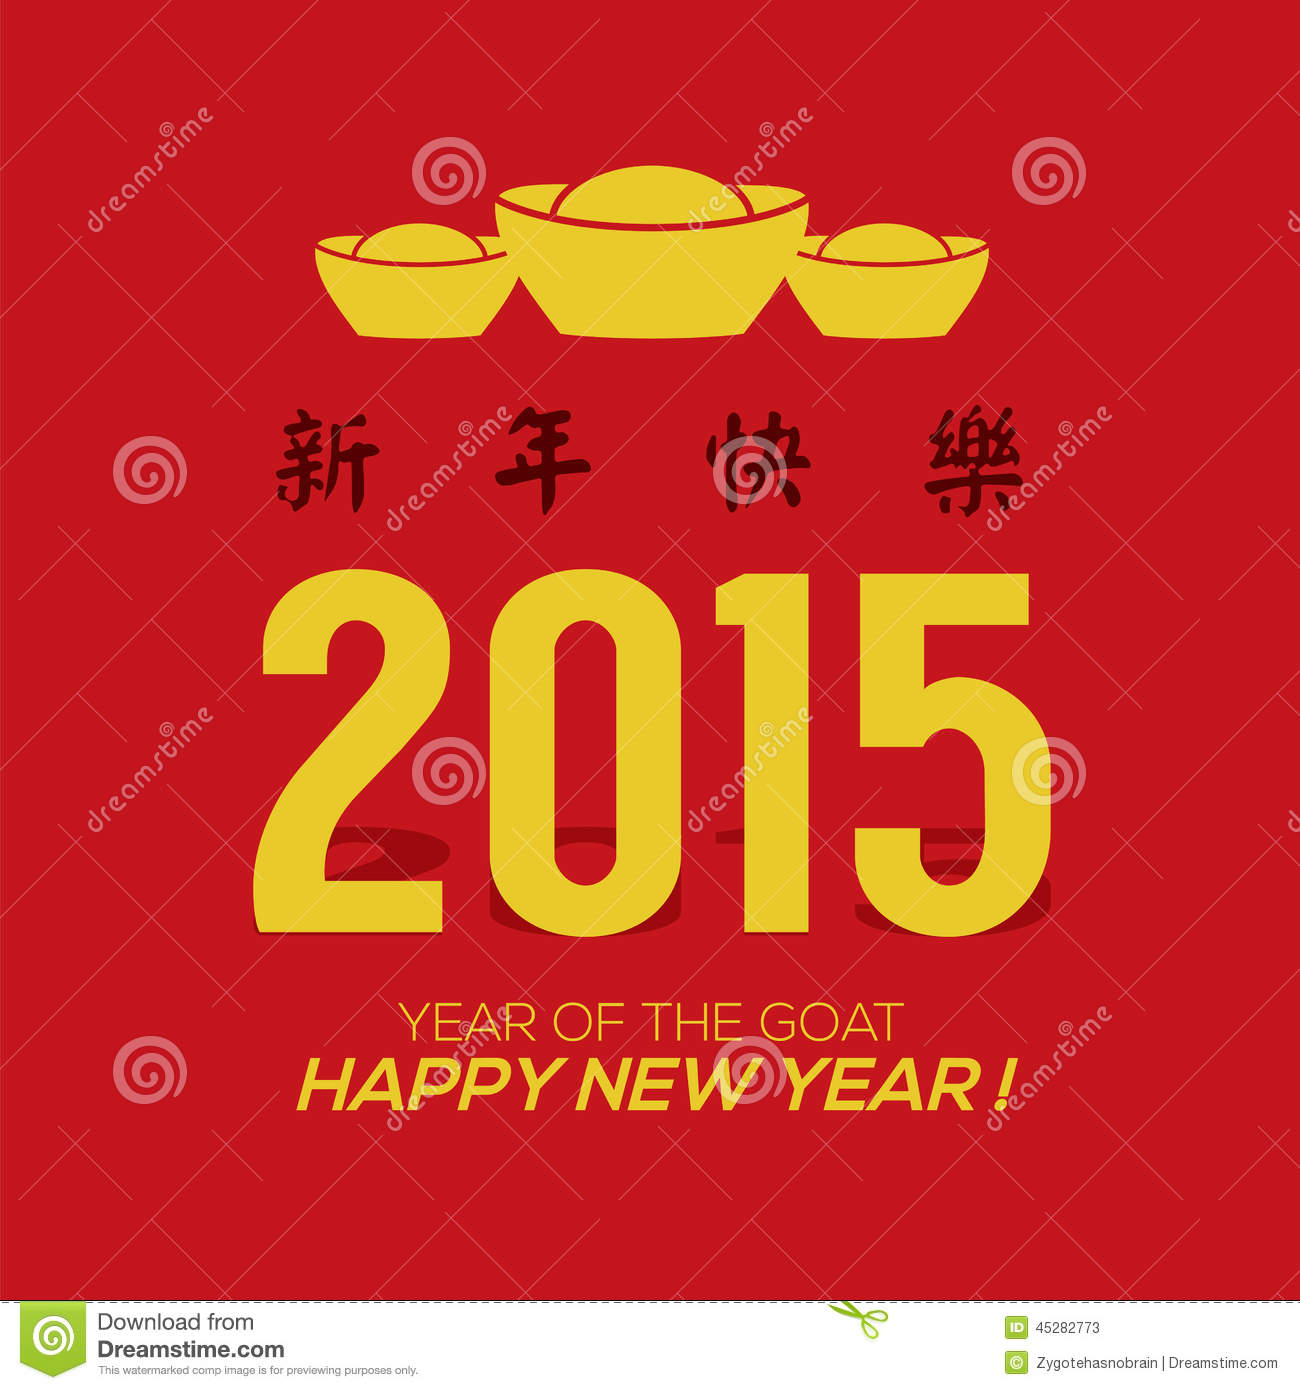 New Chinese New Year Greetings Xin Nian Kuai Le